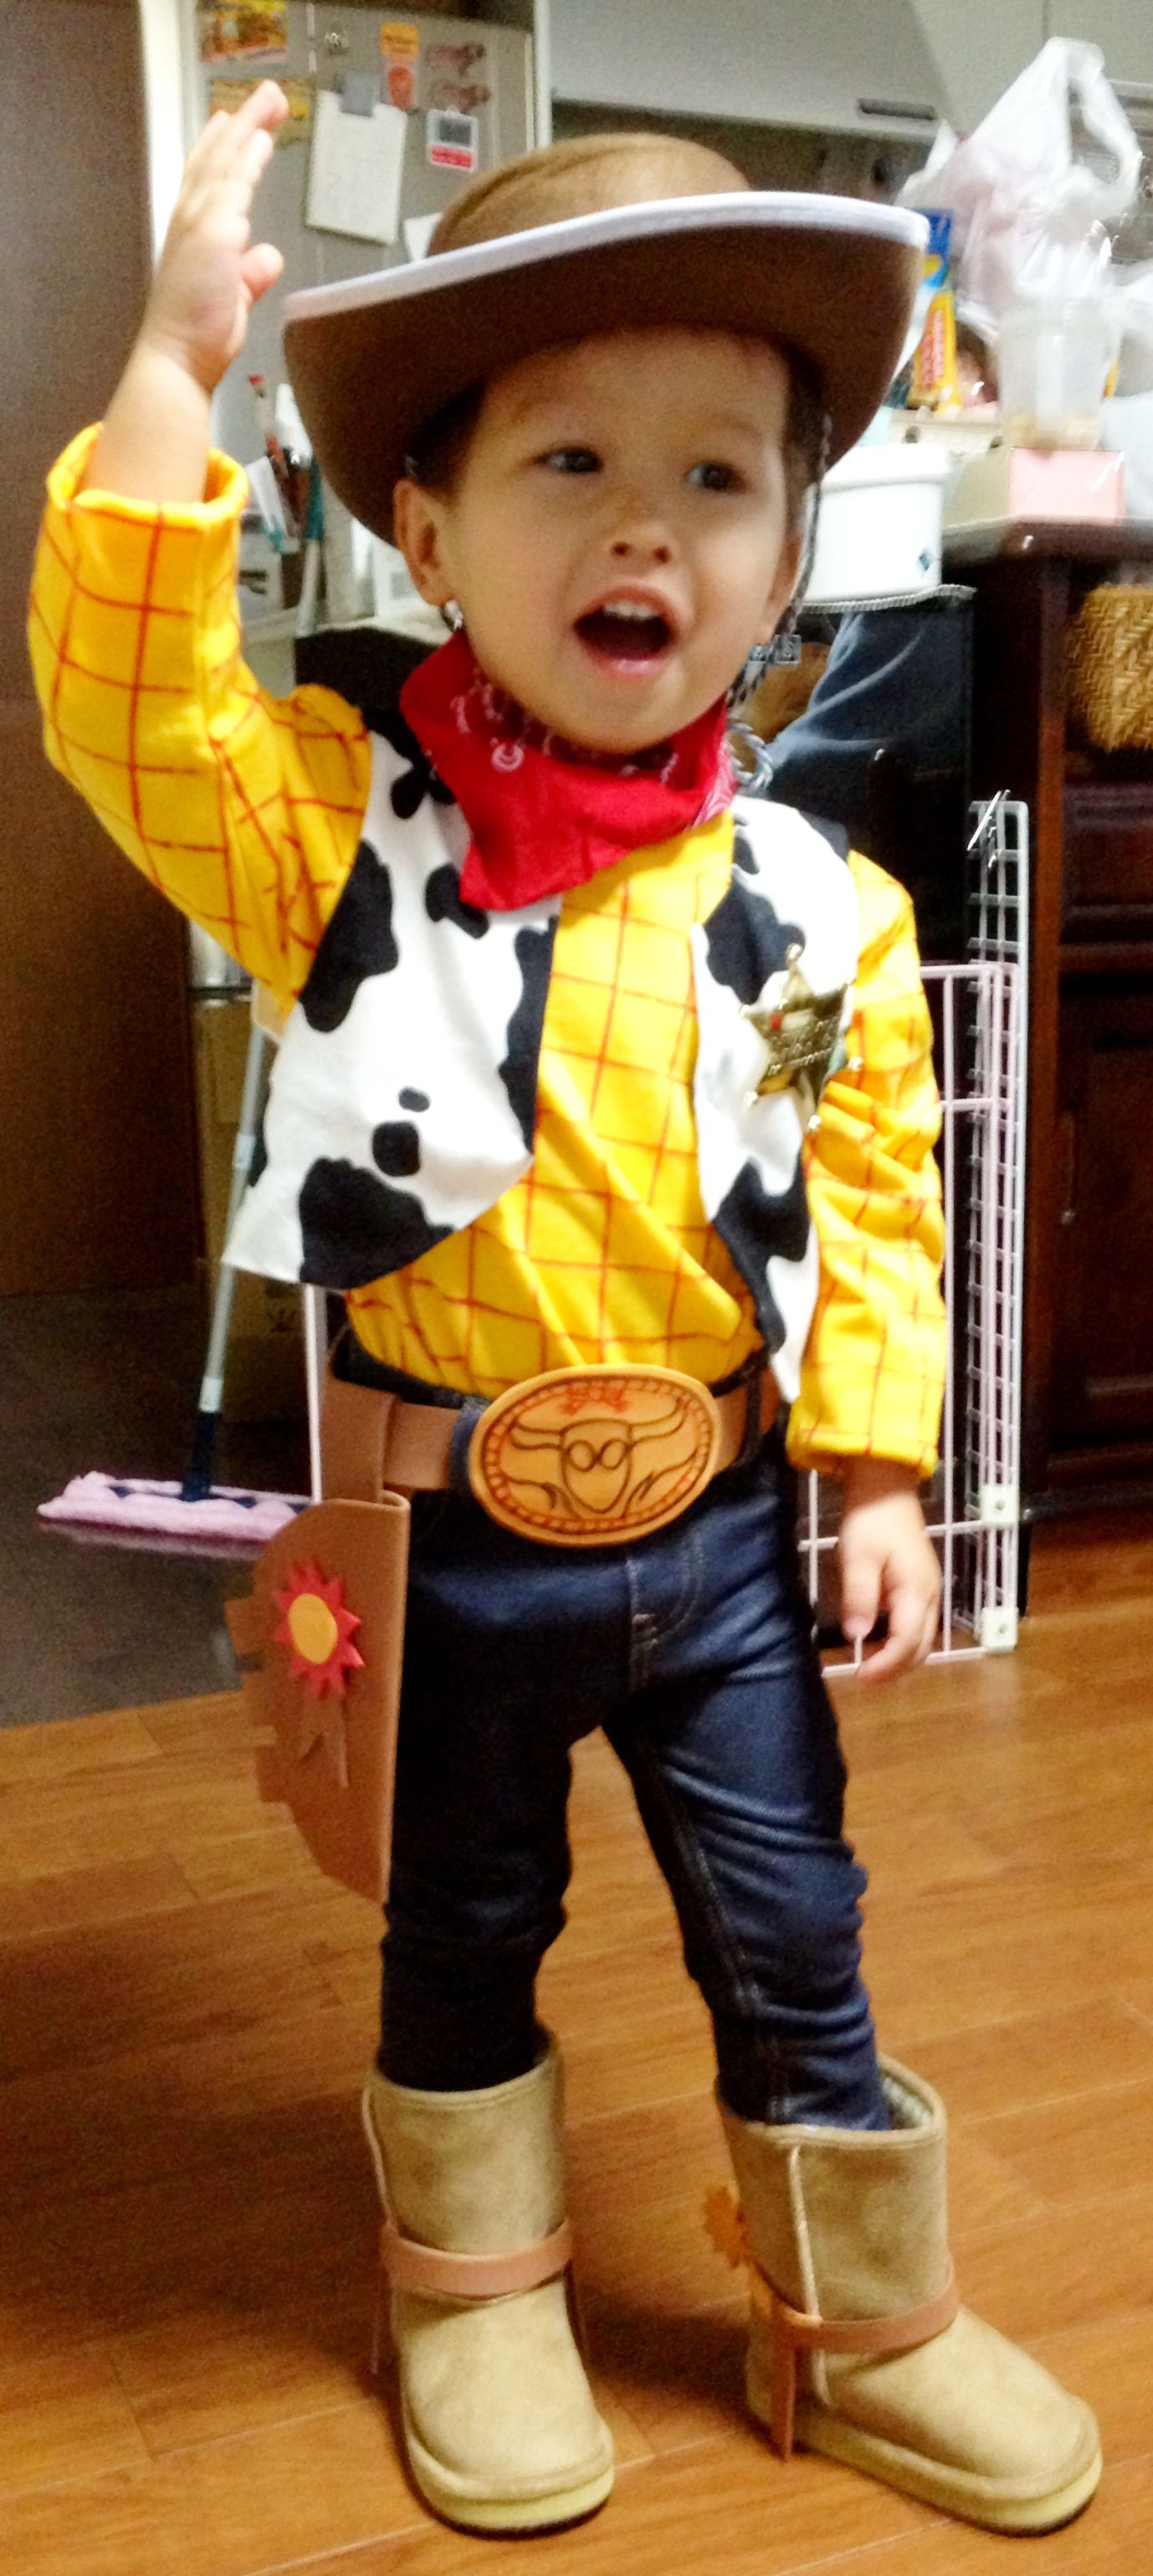 Best ideas about DIY Woody Costume . Save or Pin Toy story Woody costume Holiday Pinterest Now.